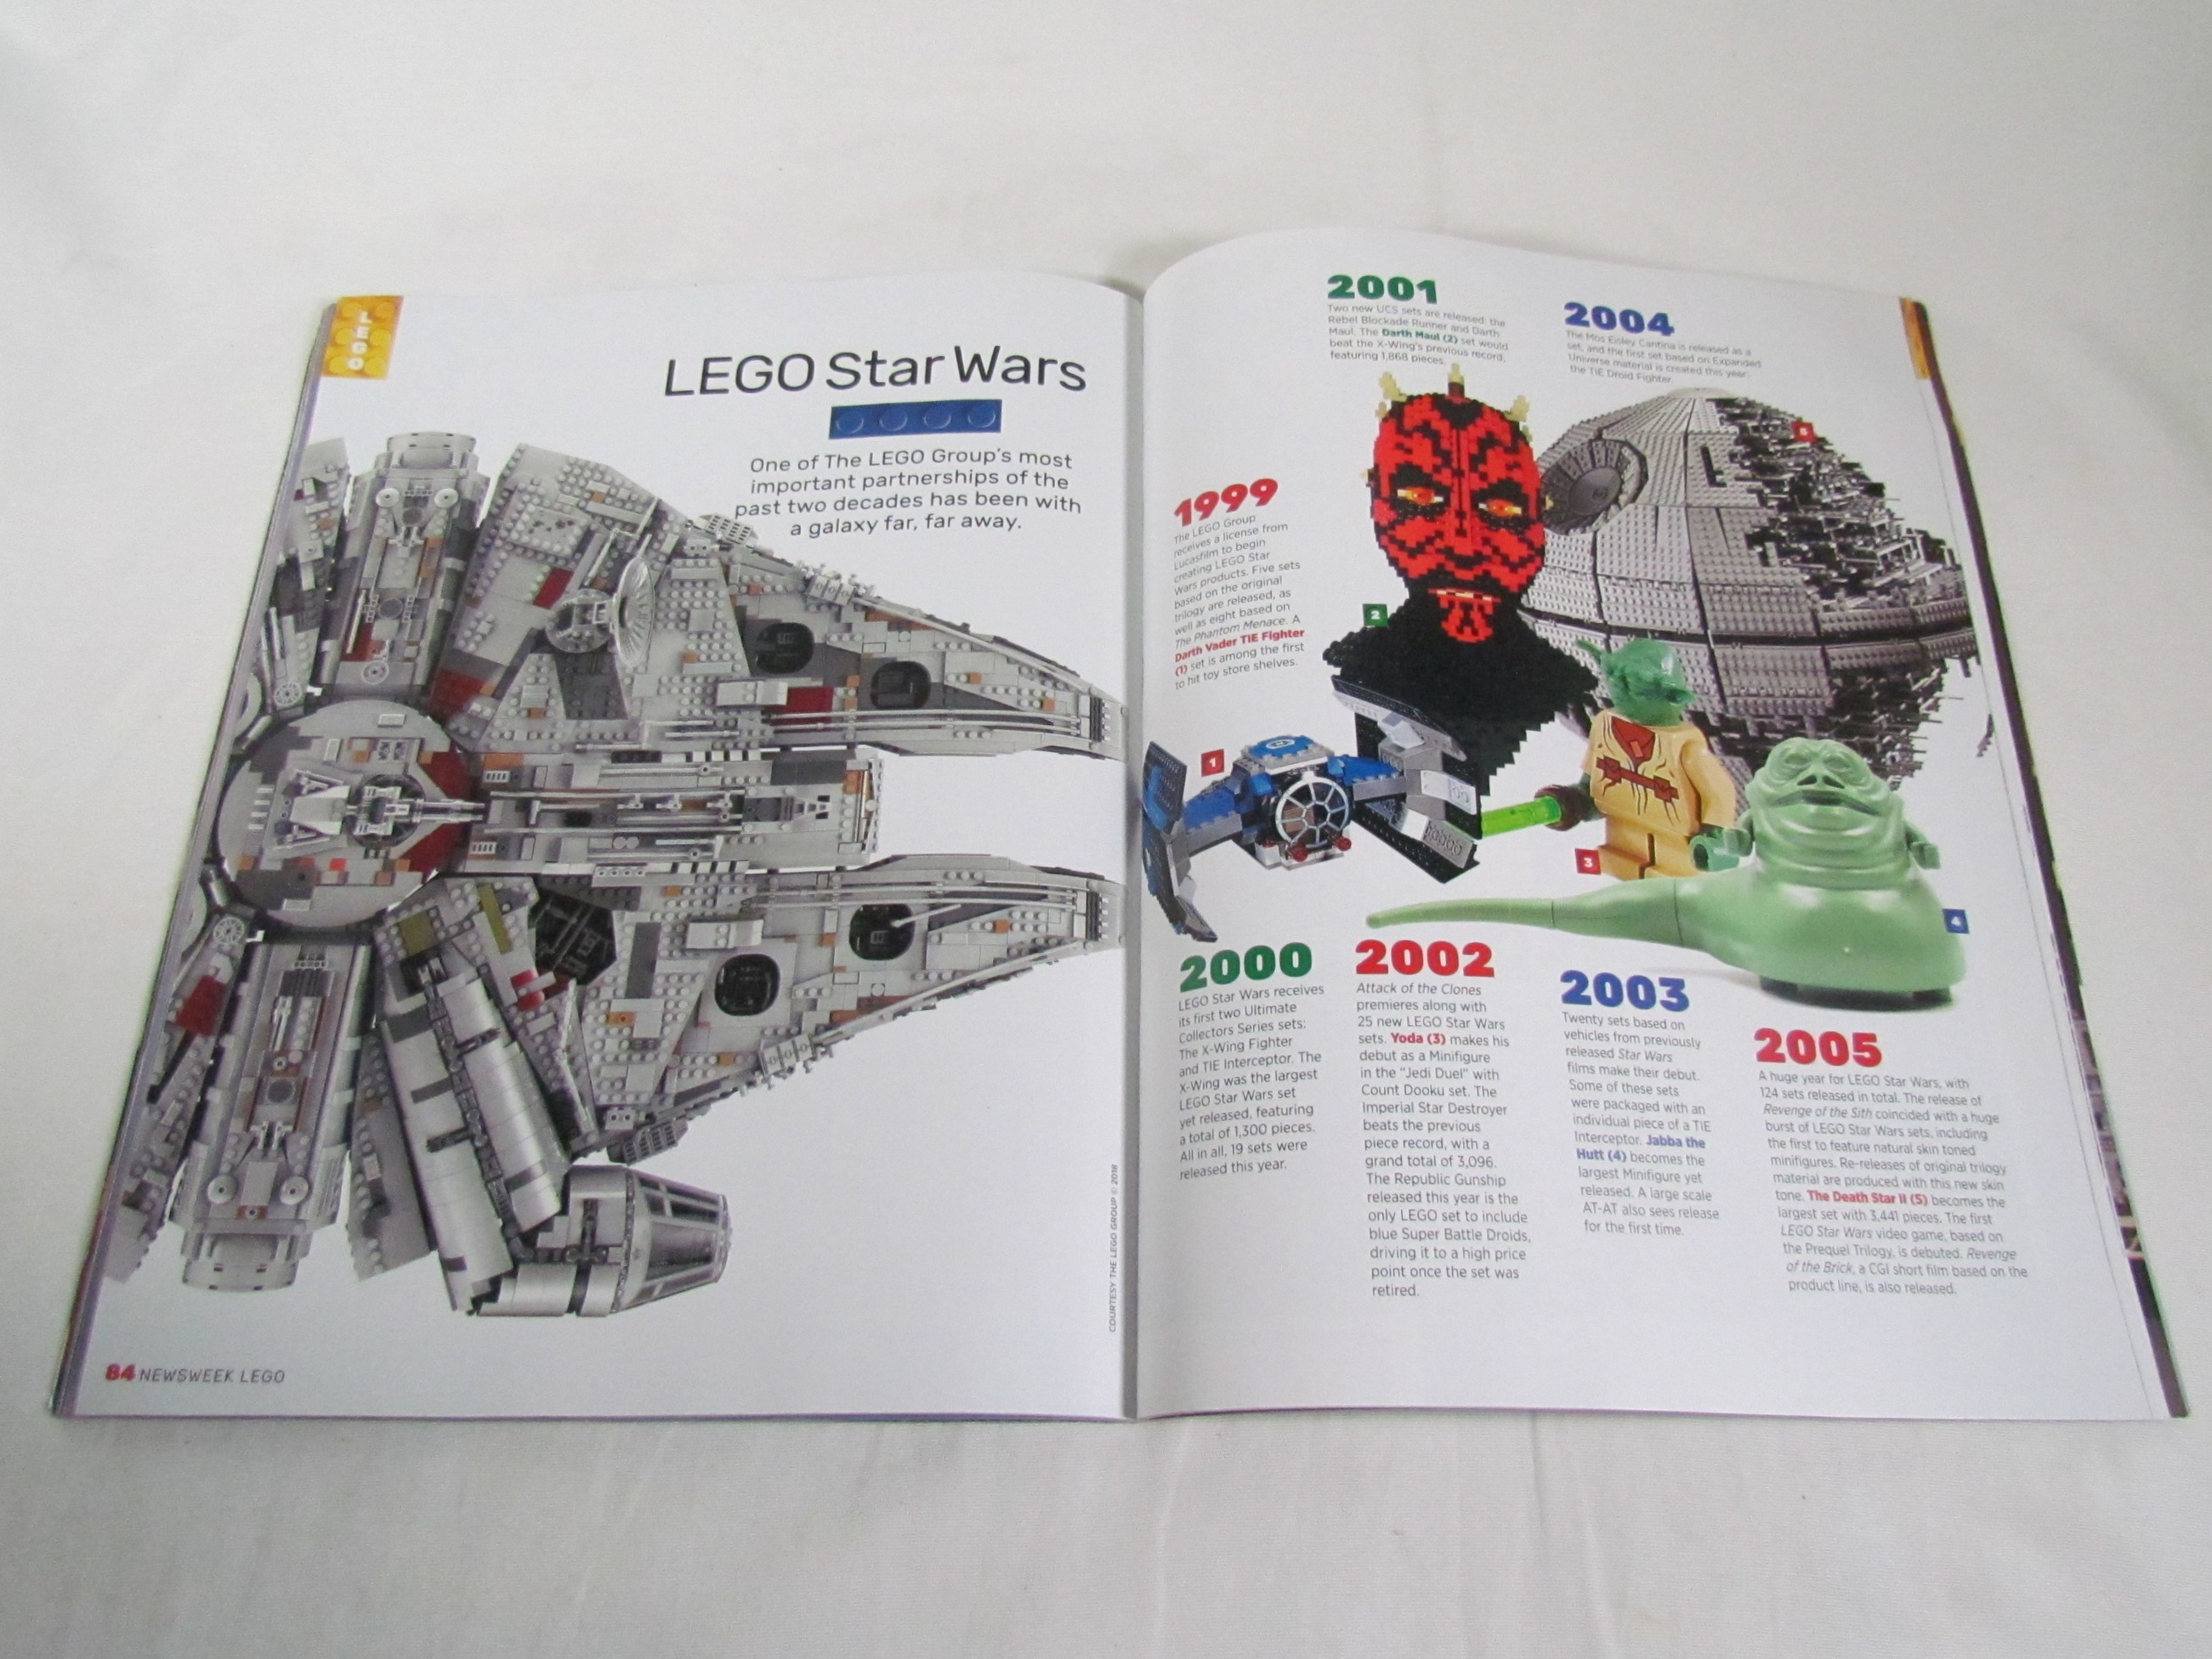 Newsweek Special Edition: LEGO - The toy that changed our lives